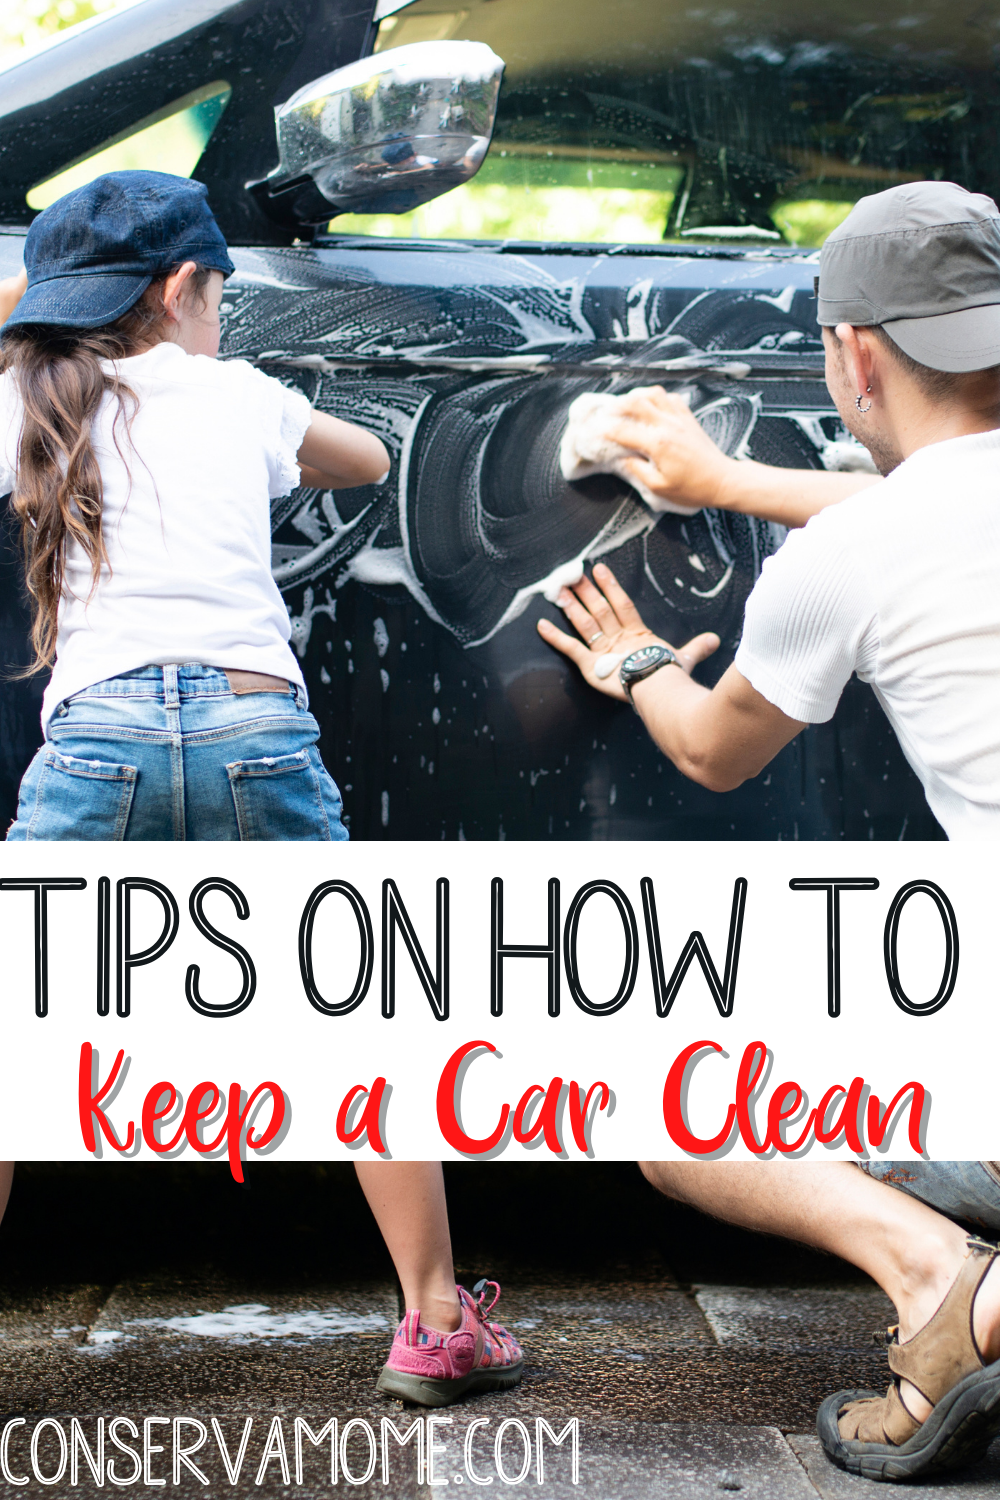 Tips on how to keep a car clean